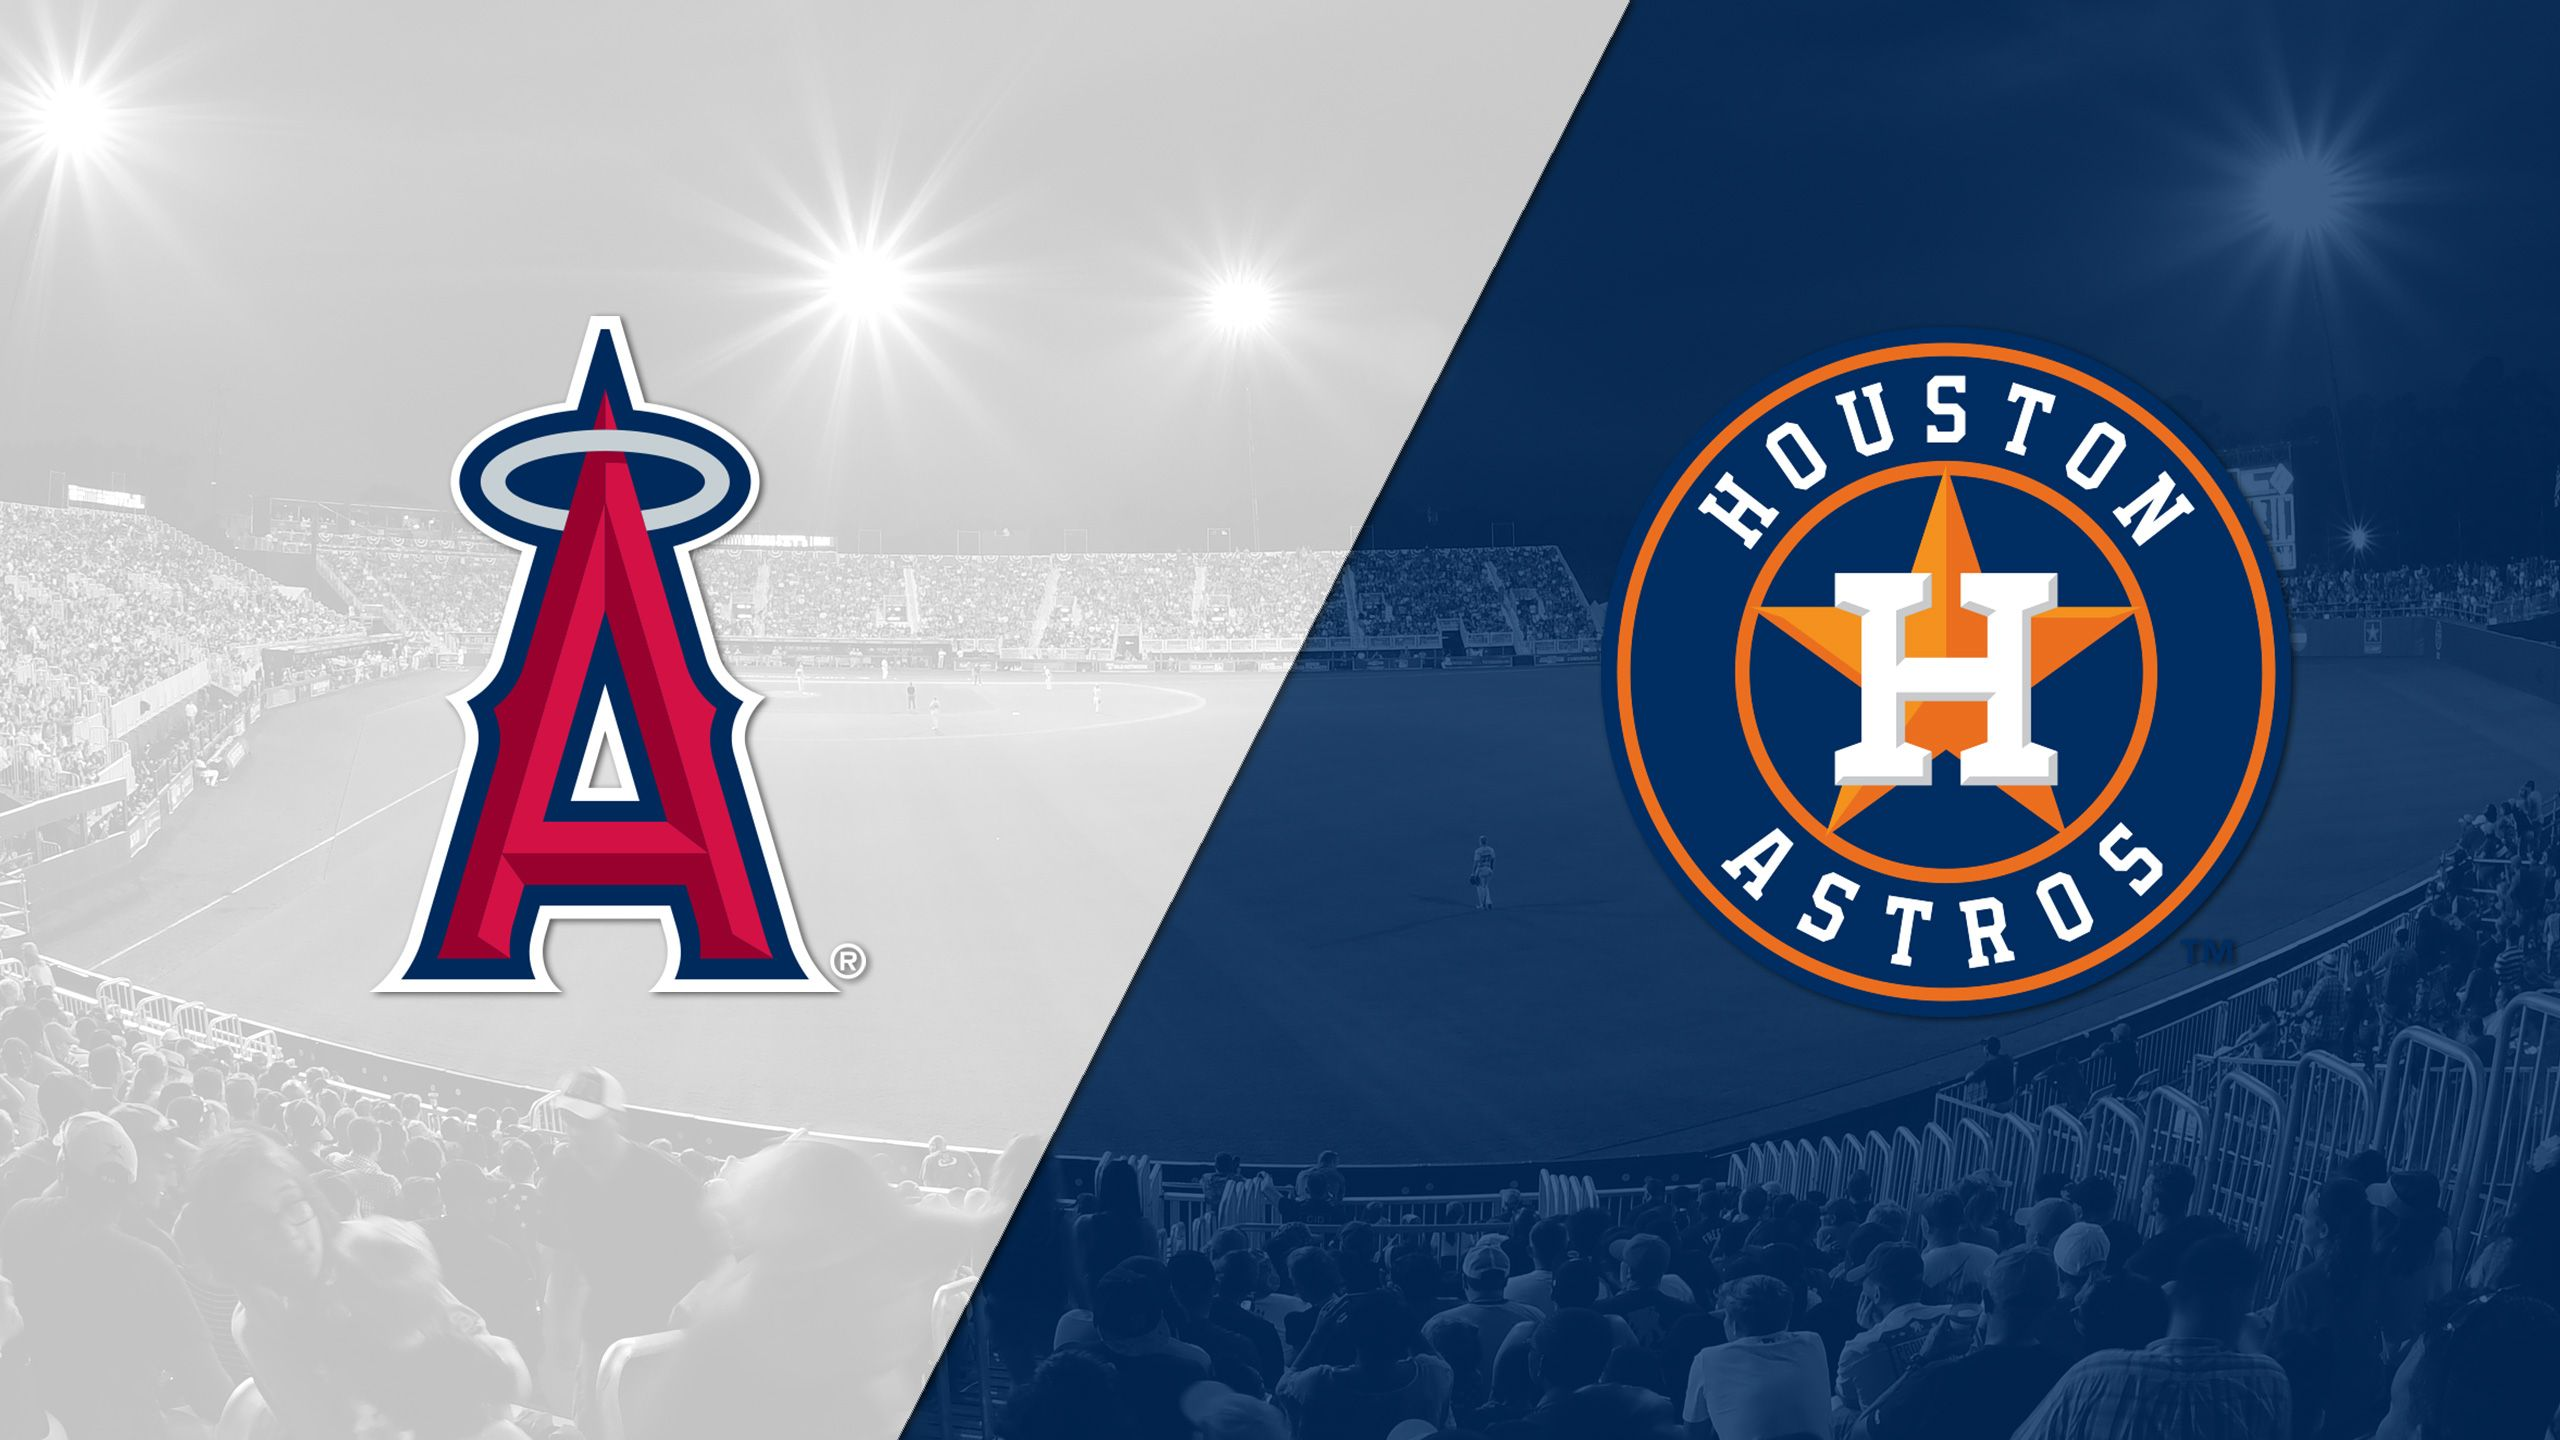 Los Angeles Angels of Anaheim vs. Houston Astros (re-air)